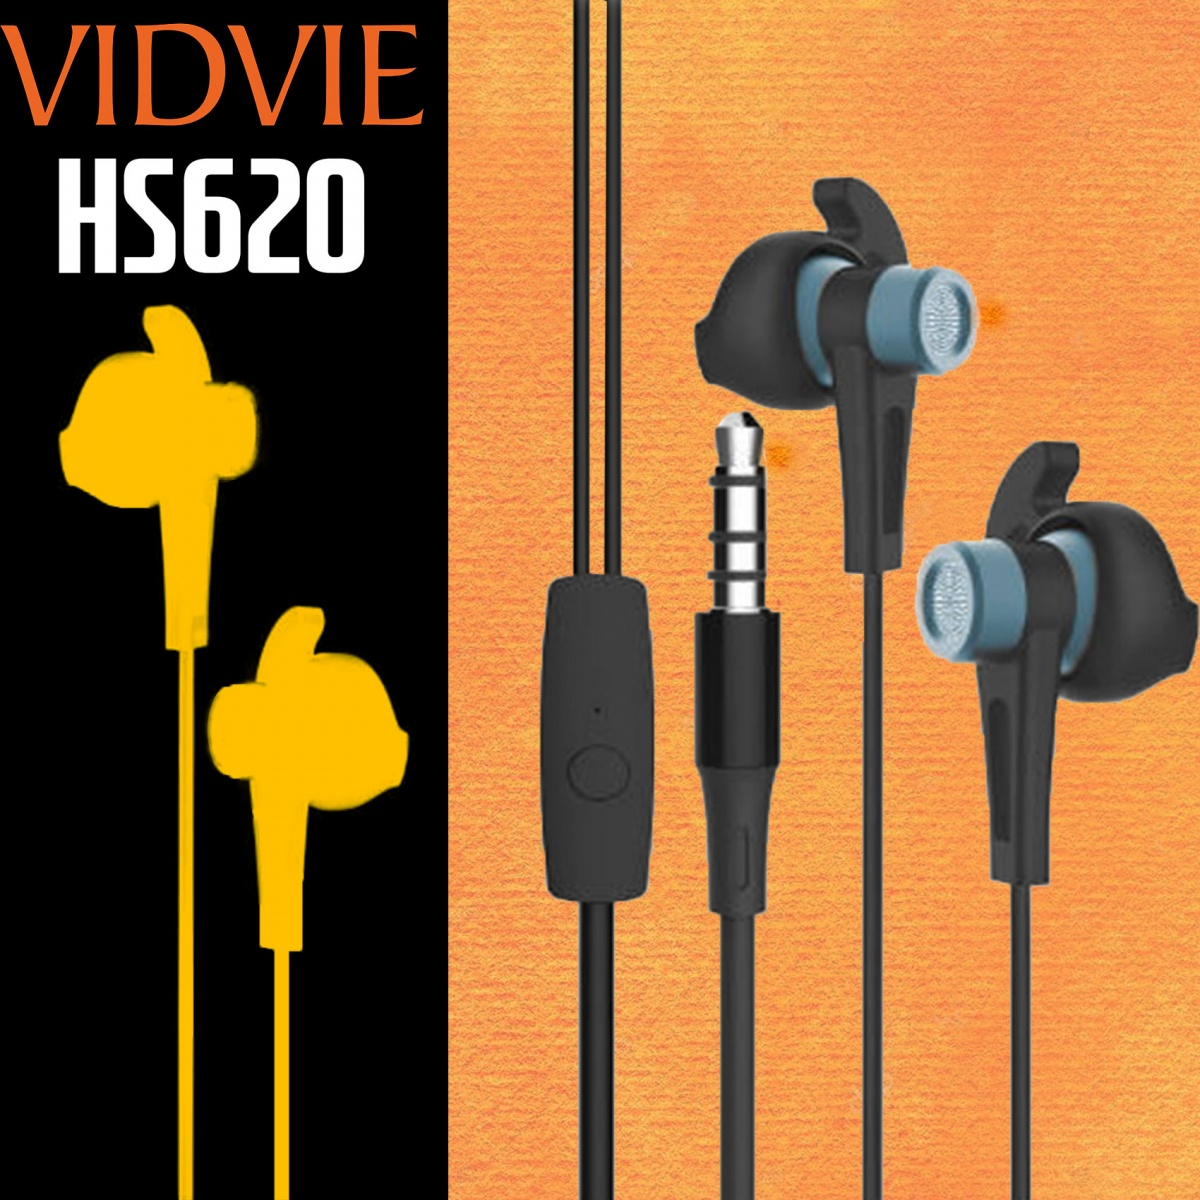 Vidvie HS620 Sports Wired Earphone - Black